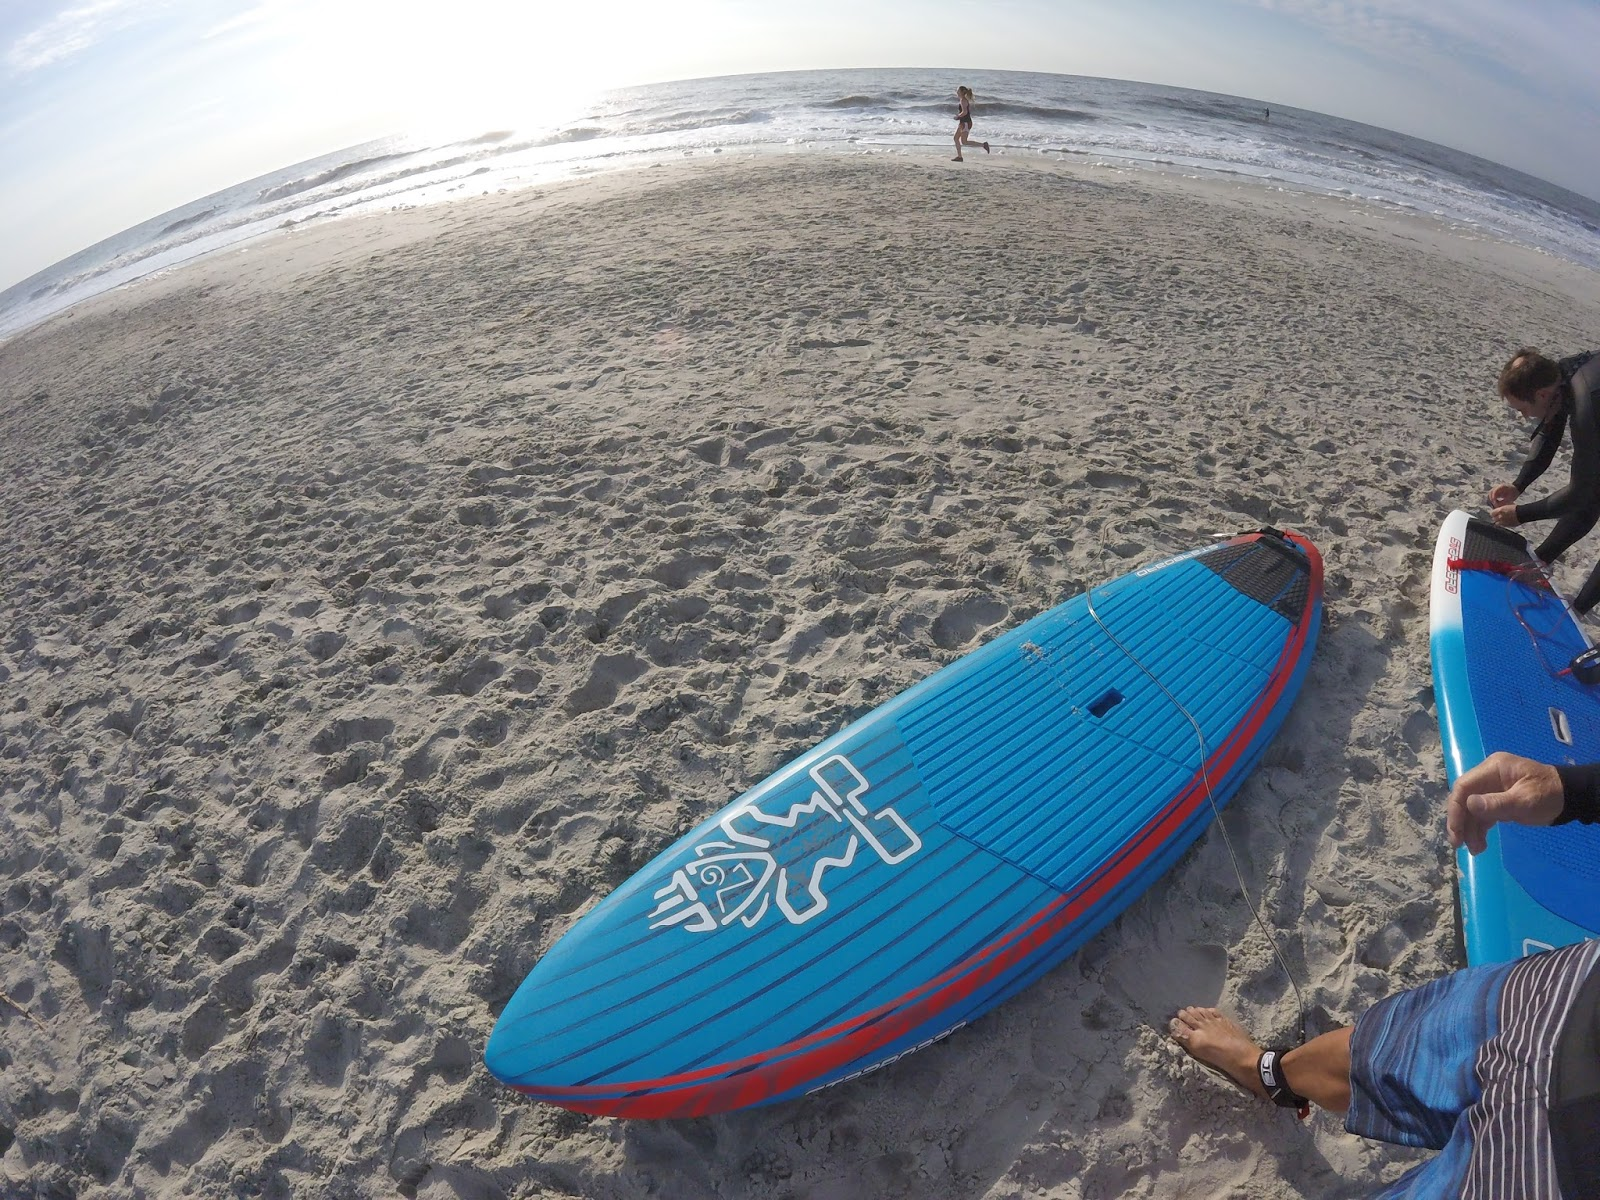 atlantic paddle surfing 2016 starboard 9 0 pro